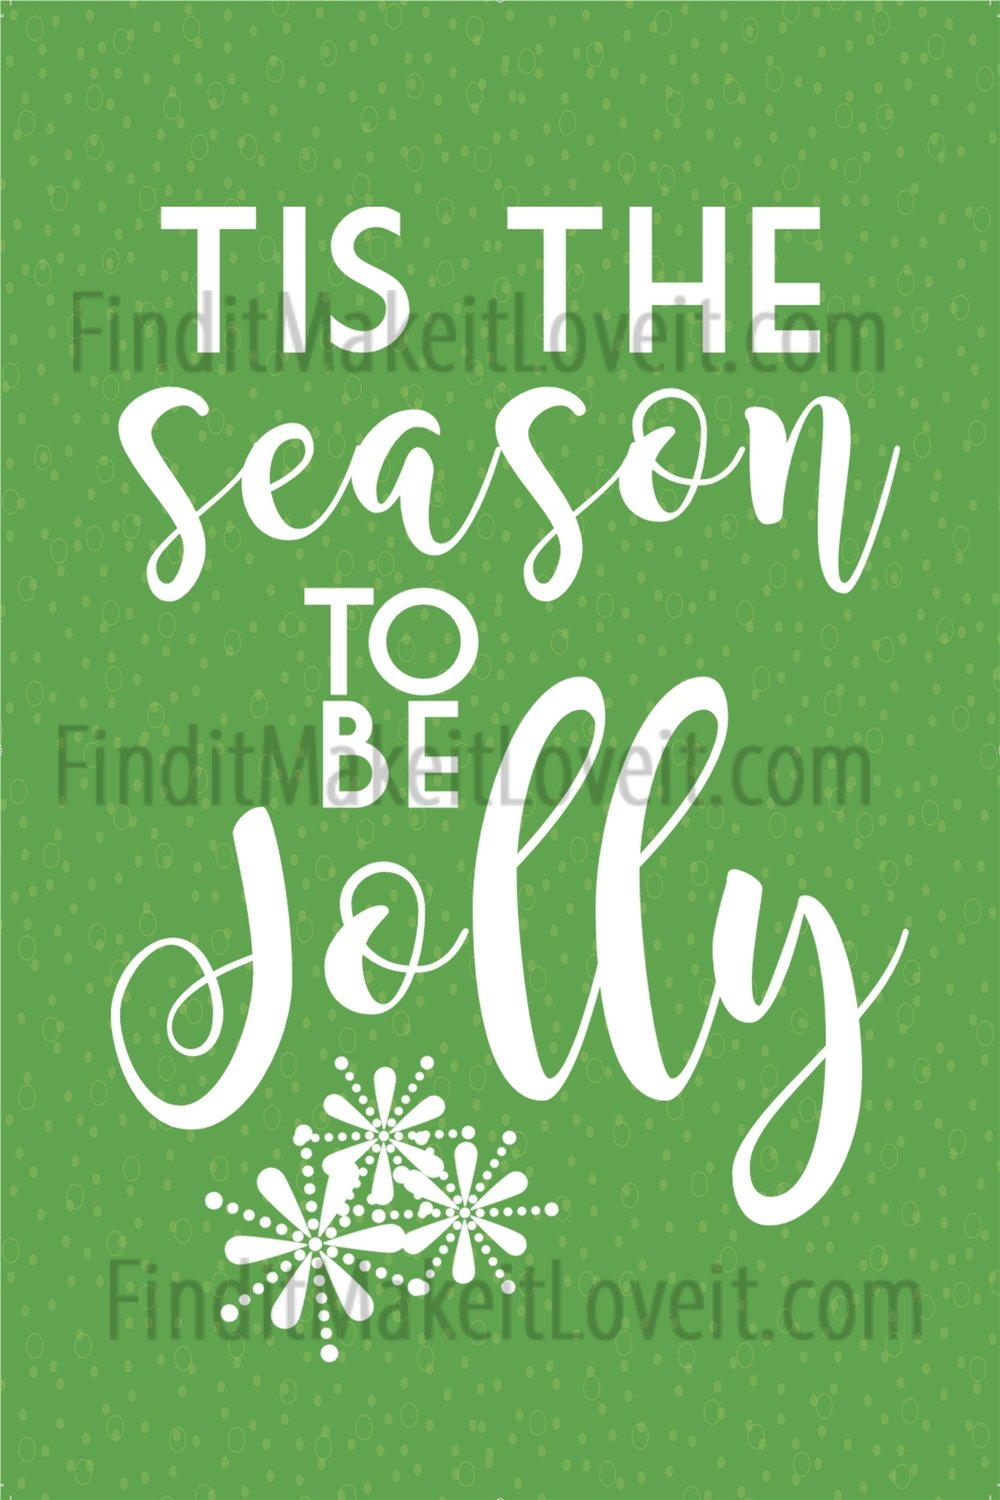 Tis the season printable 4x6